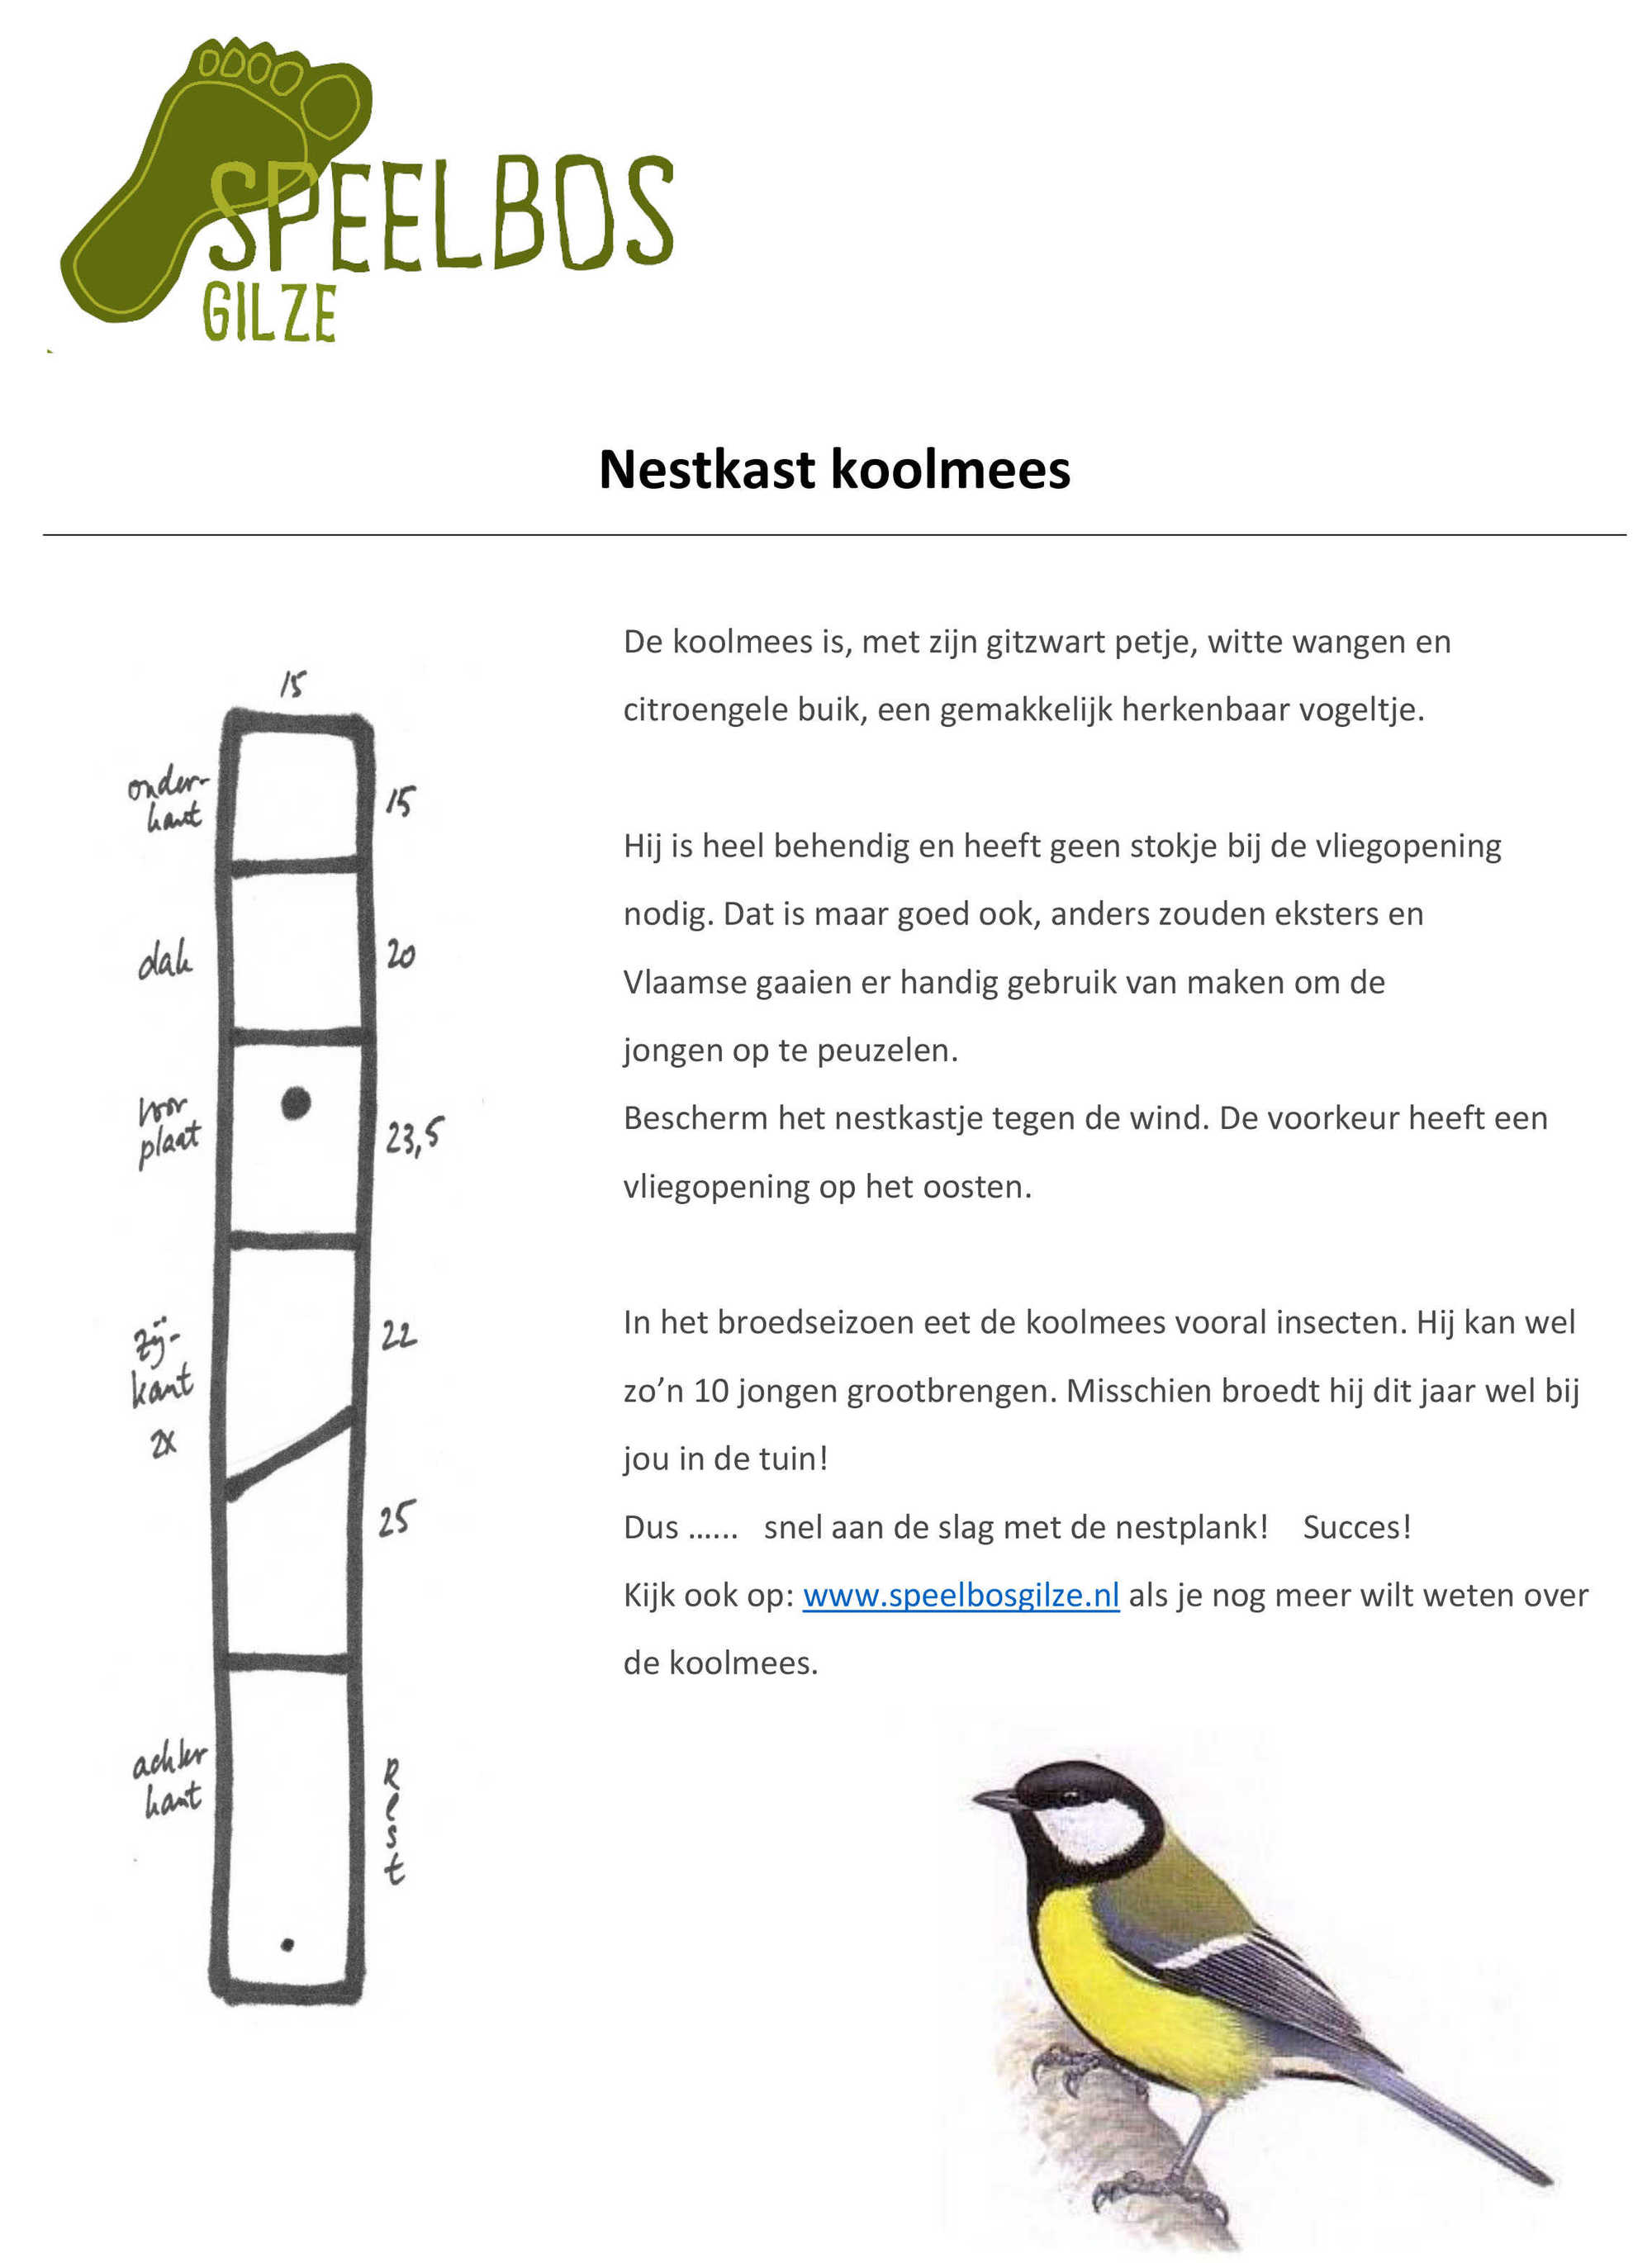 Nestkast koolmees   Speelbos Gilze